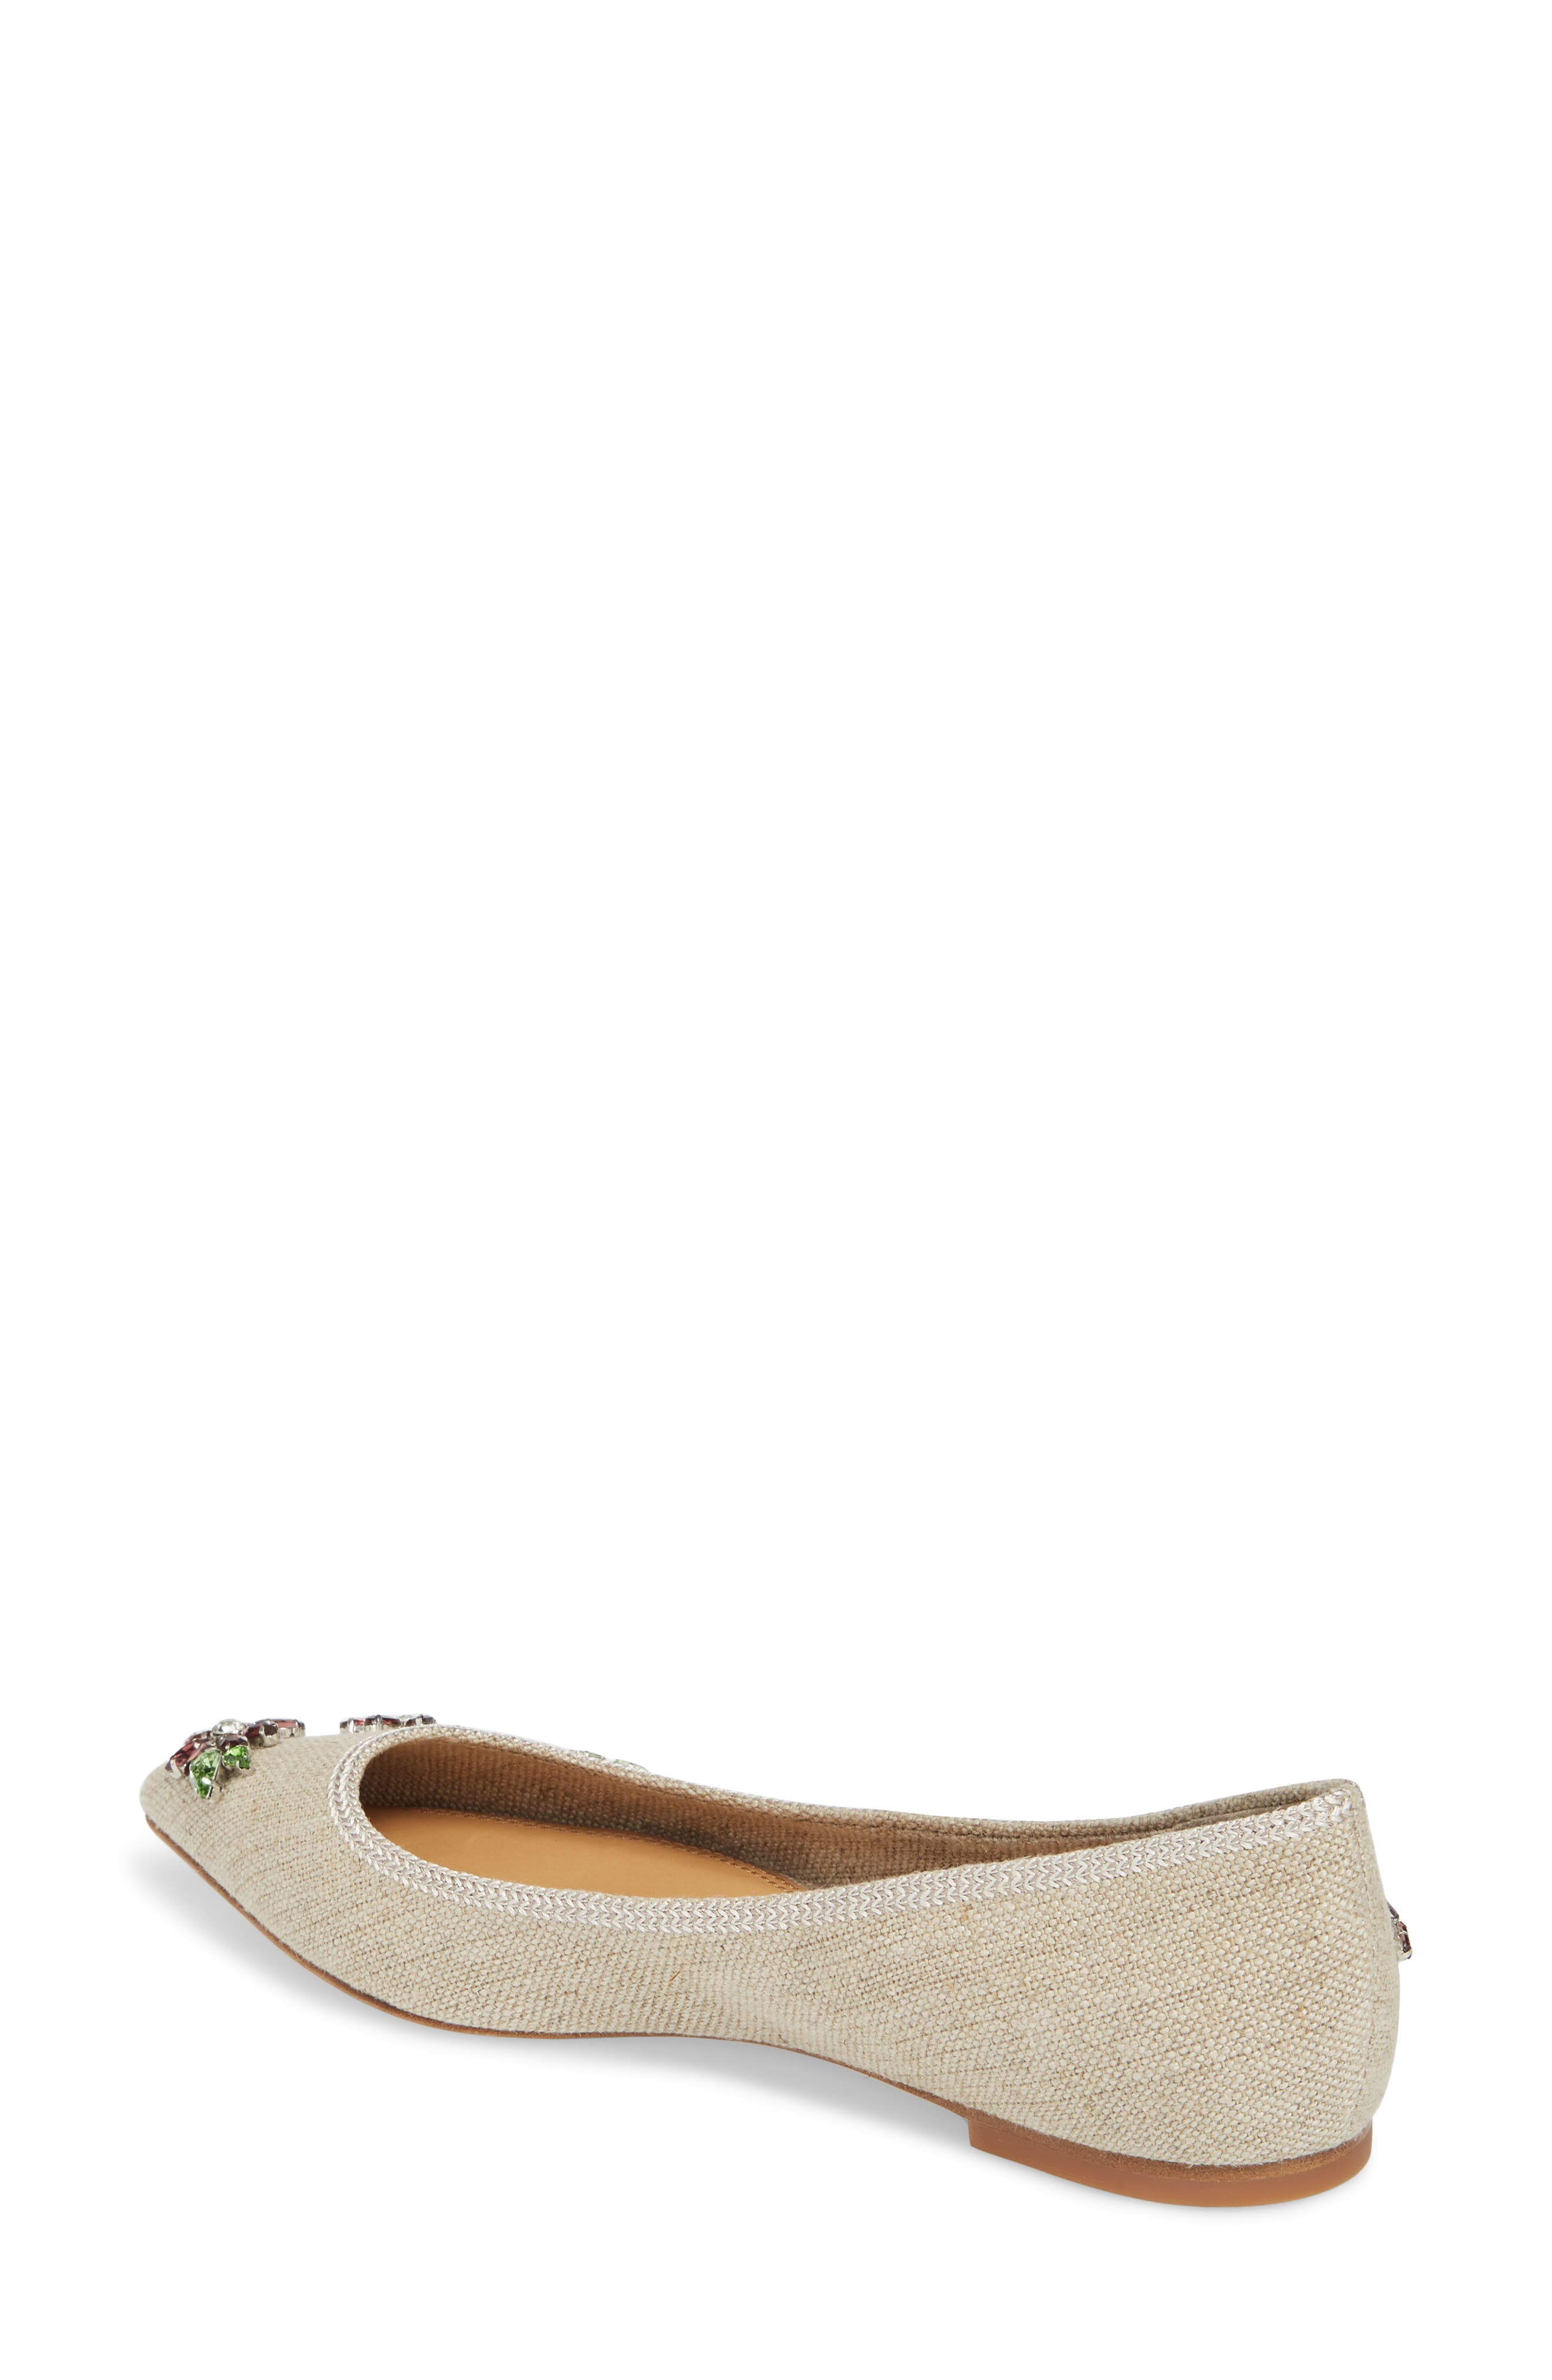 Meadow Embellished Pointy Toe Flat,                             Alternate thumbnail 2, color,                             021